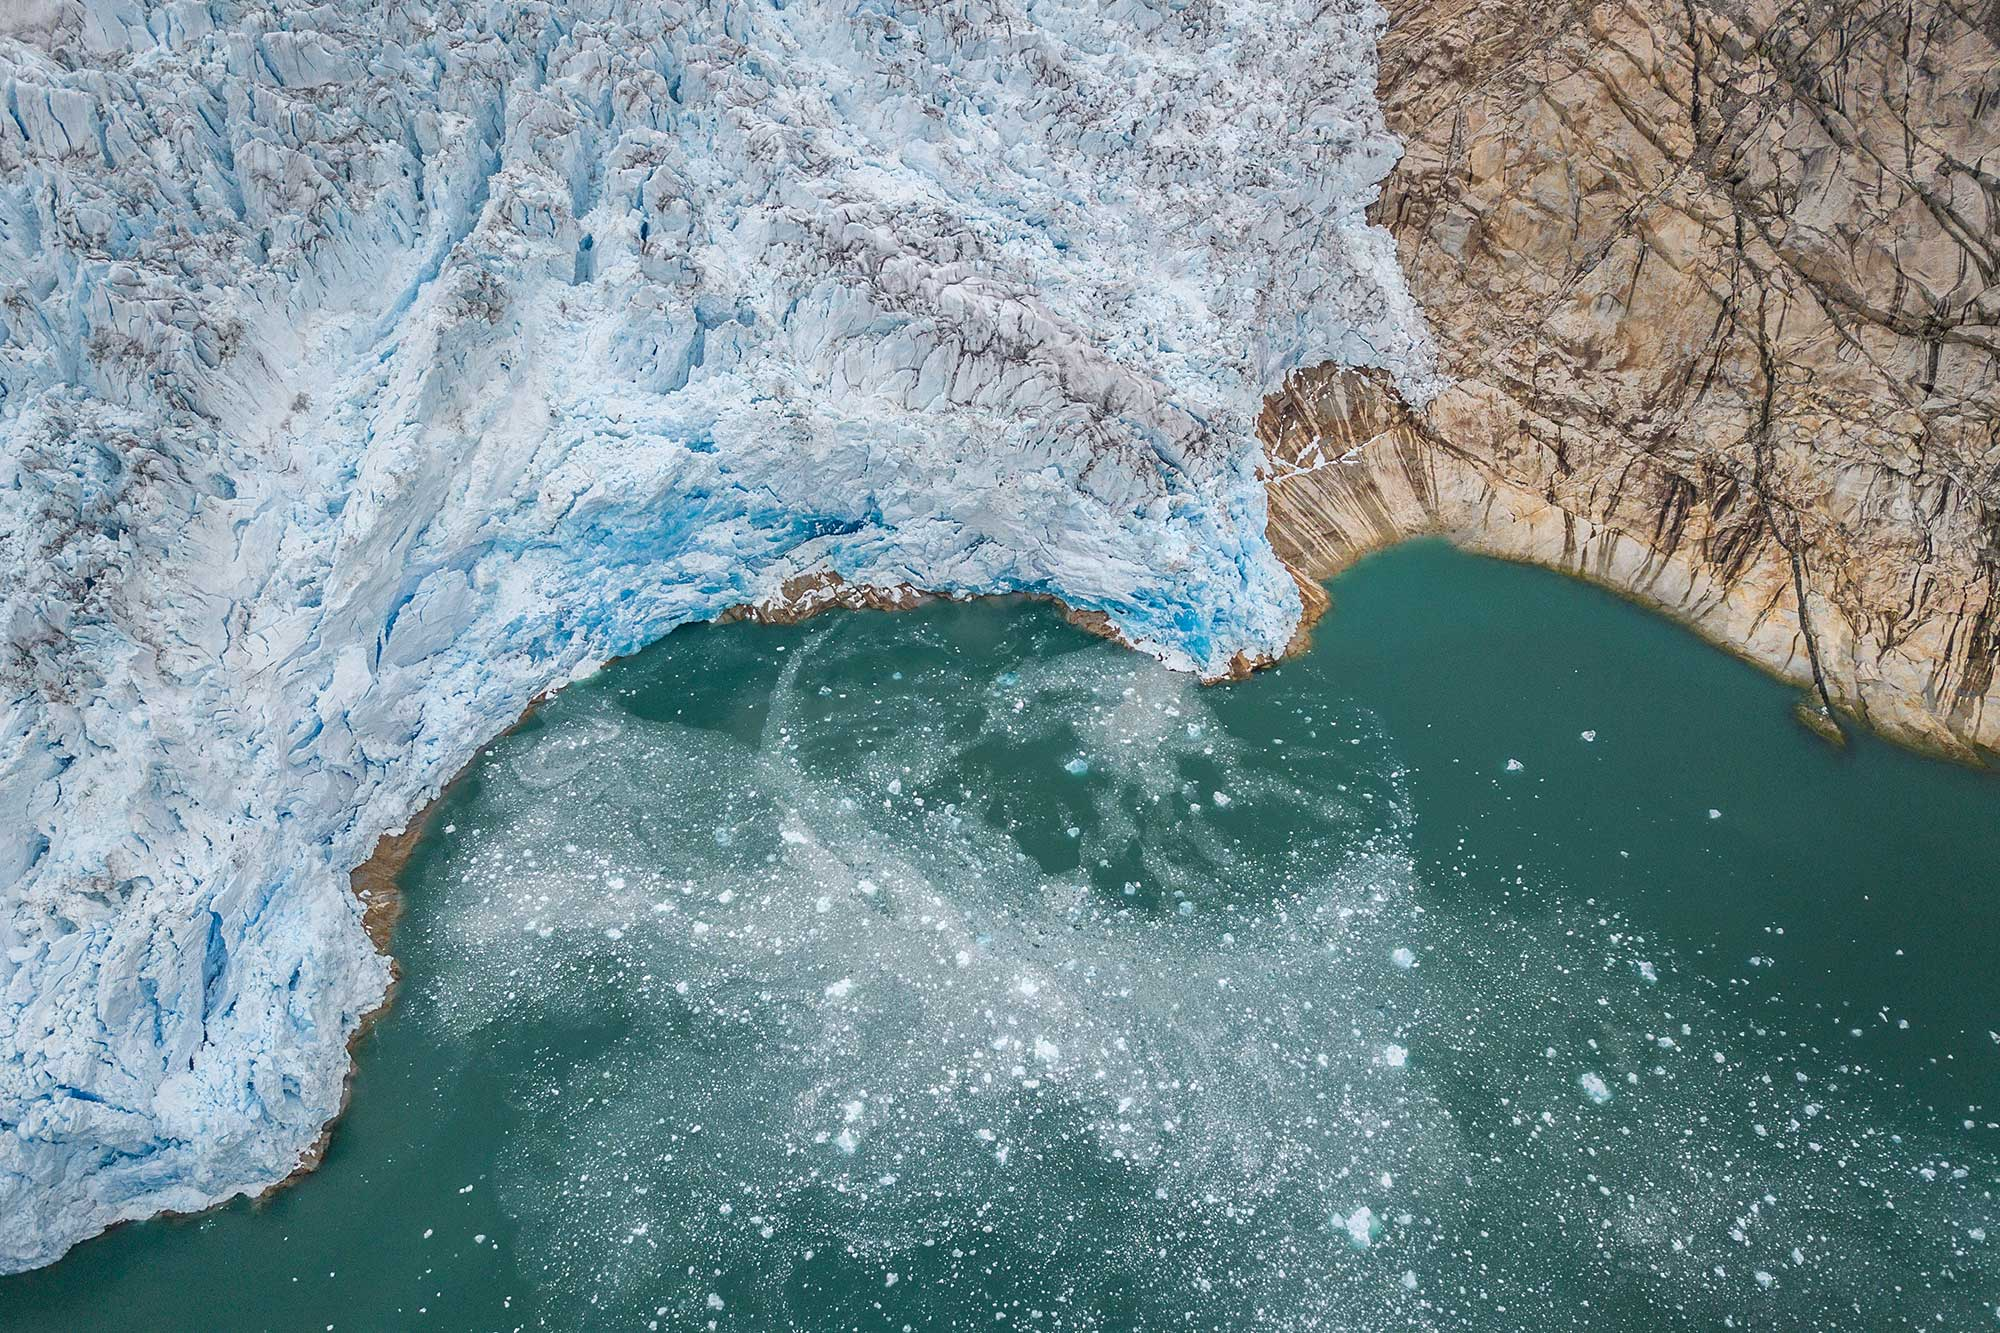 Birds Eye view of the Glacier